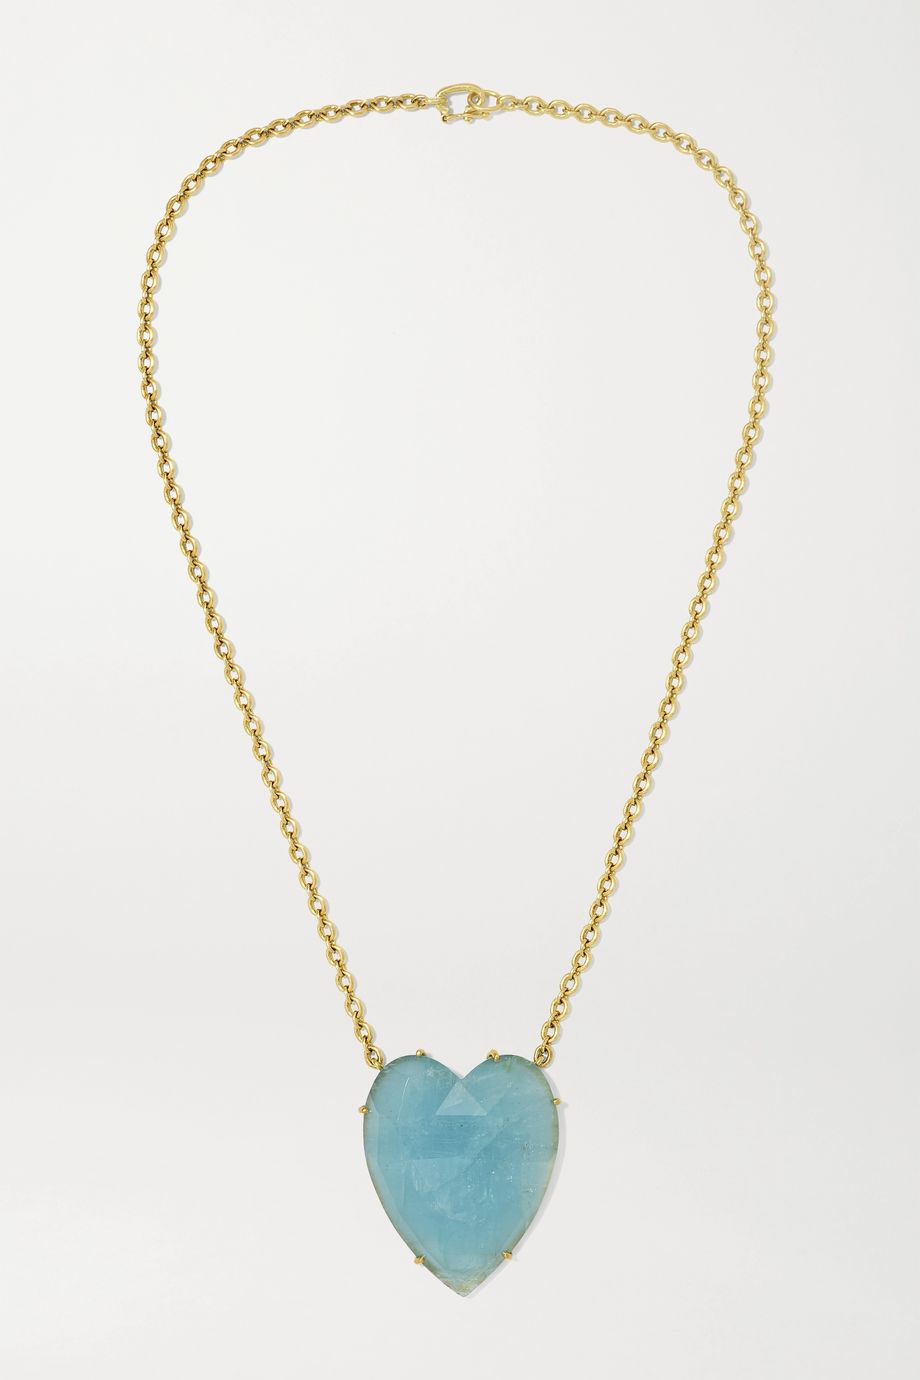 Irene Neuwirth Love 18-karat gold aquamarine necklace